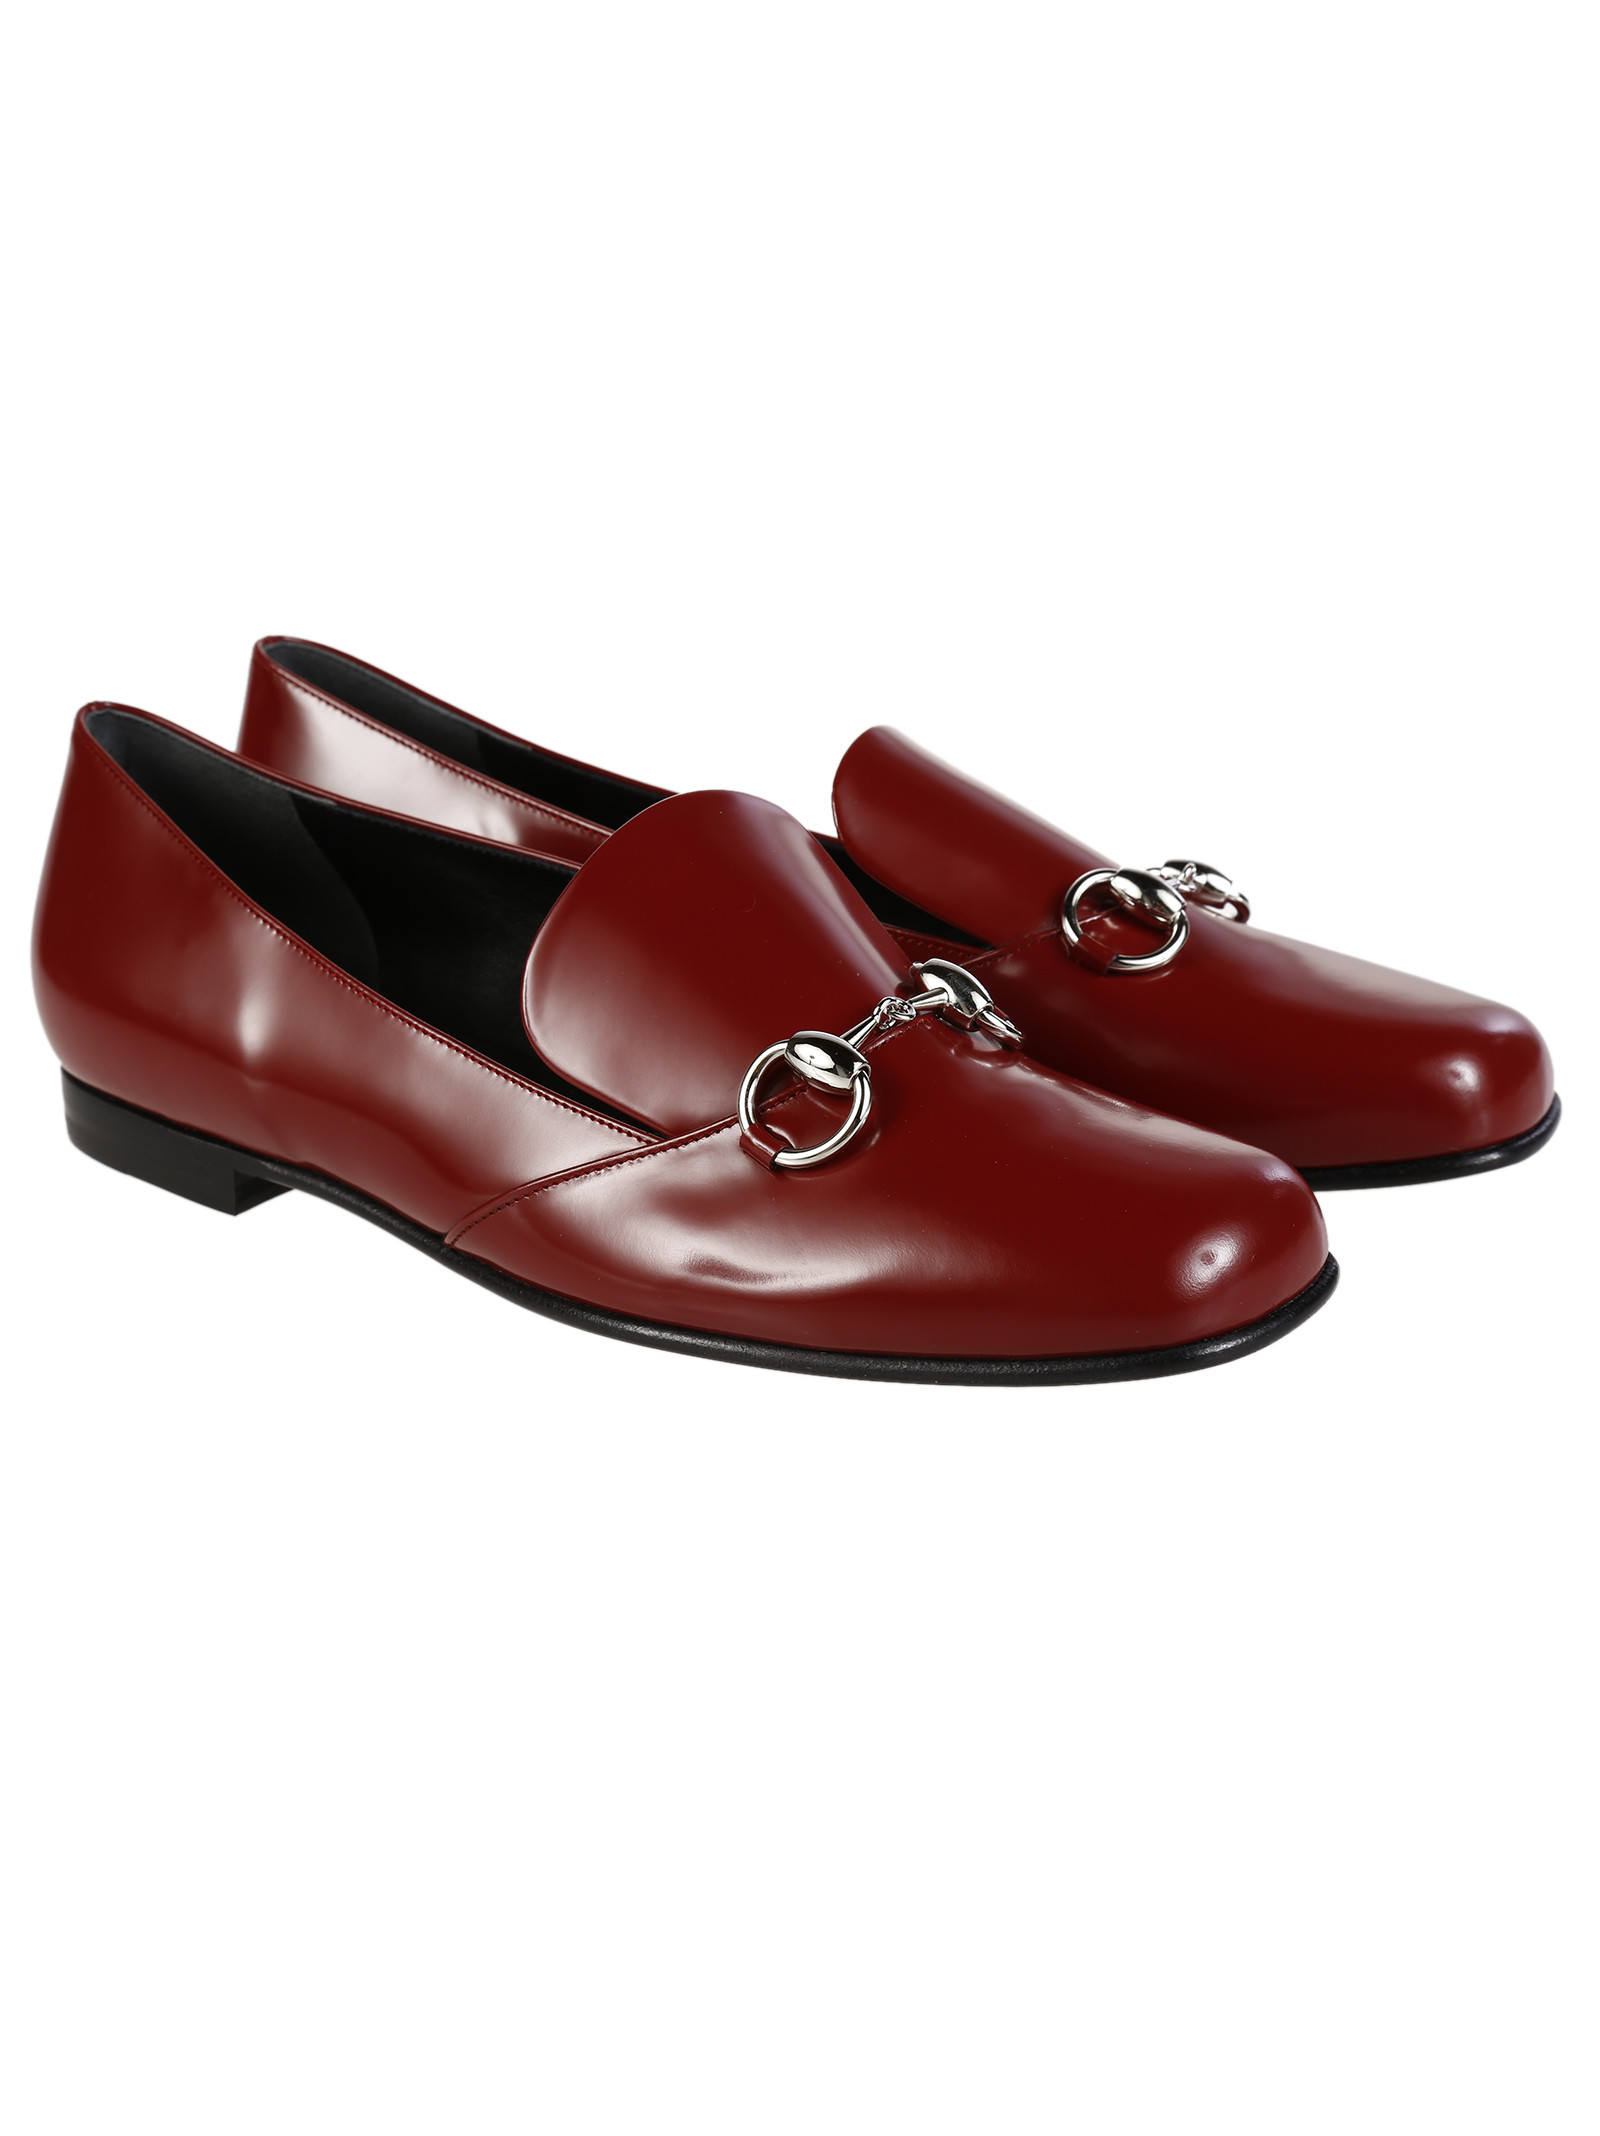 Gucci - Gucci Polished Leather Horsebit Loafer - 370229 ...